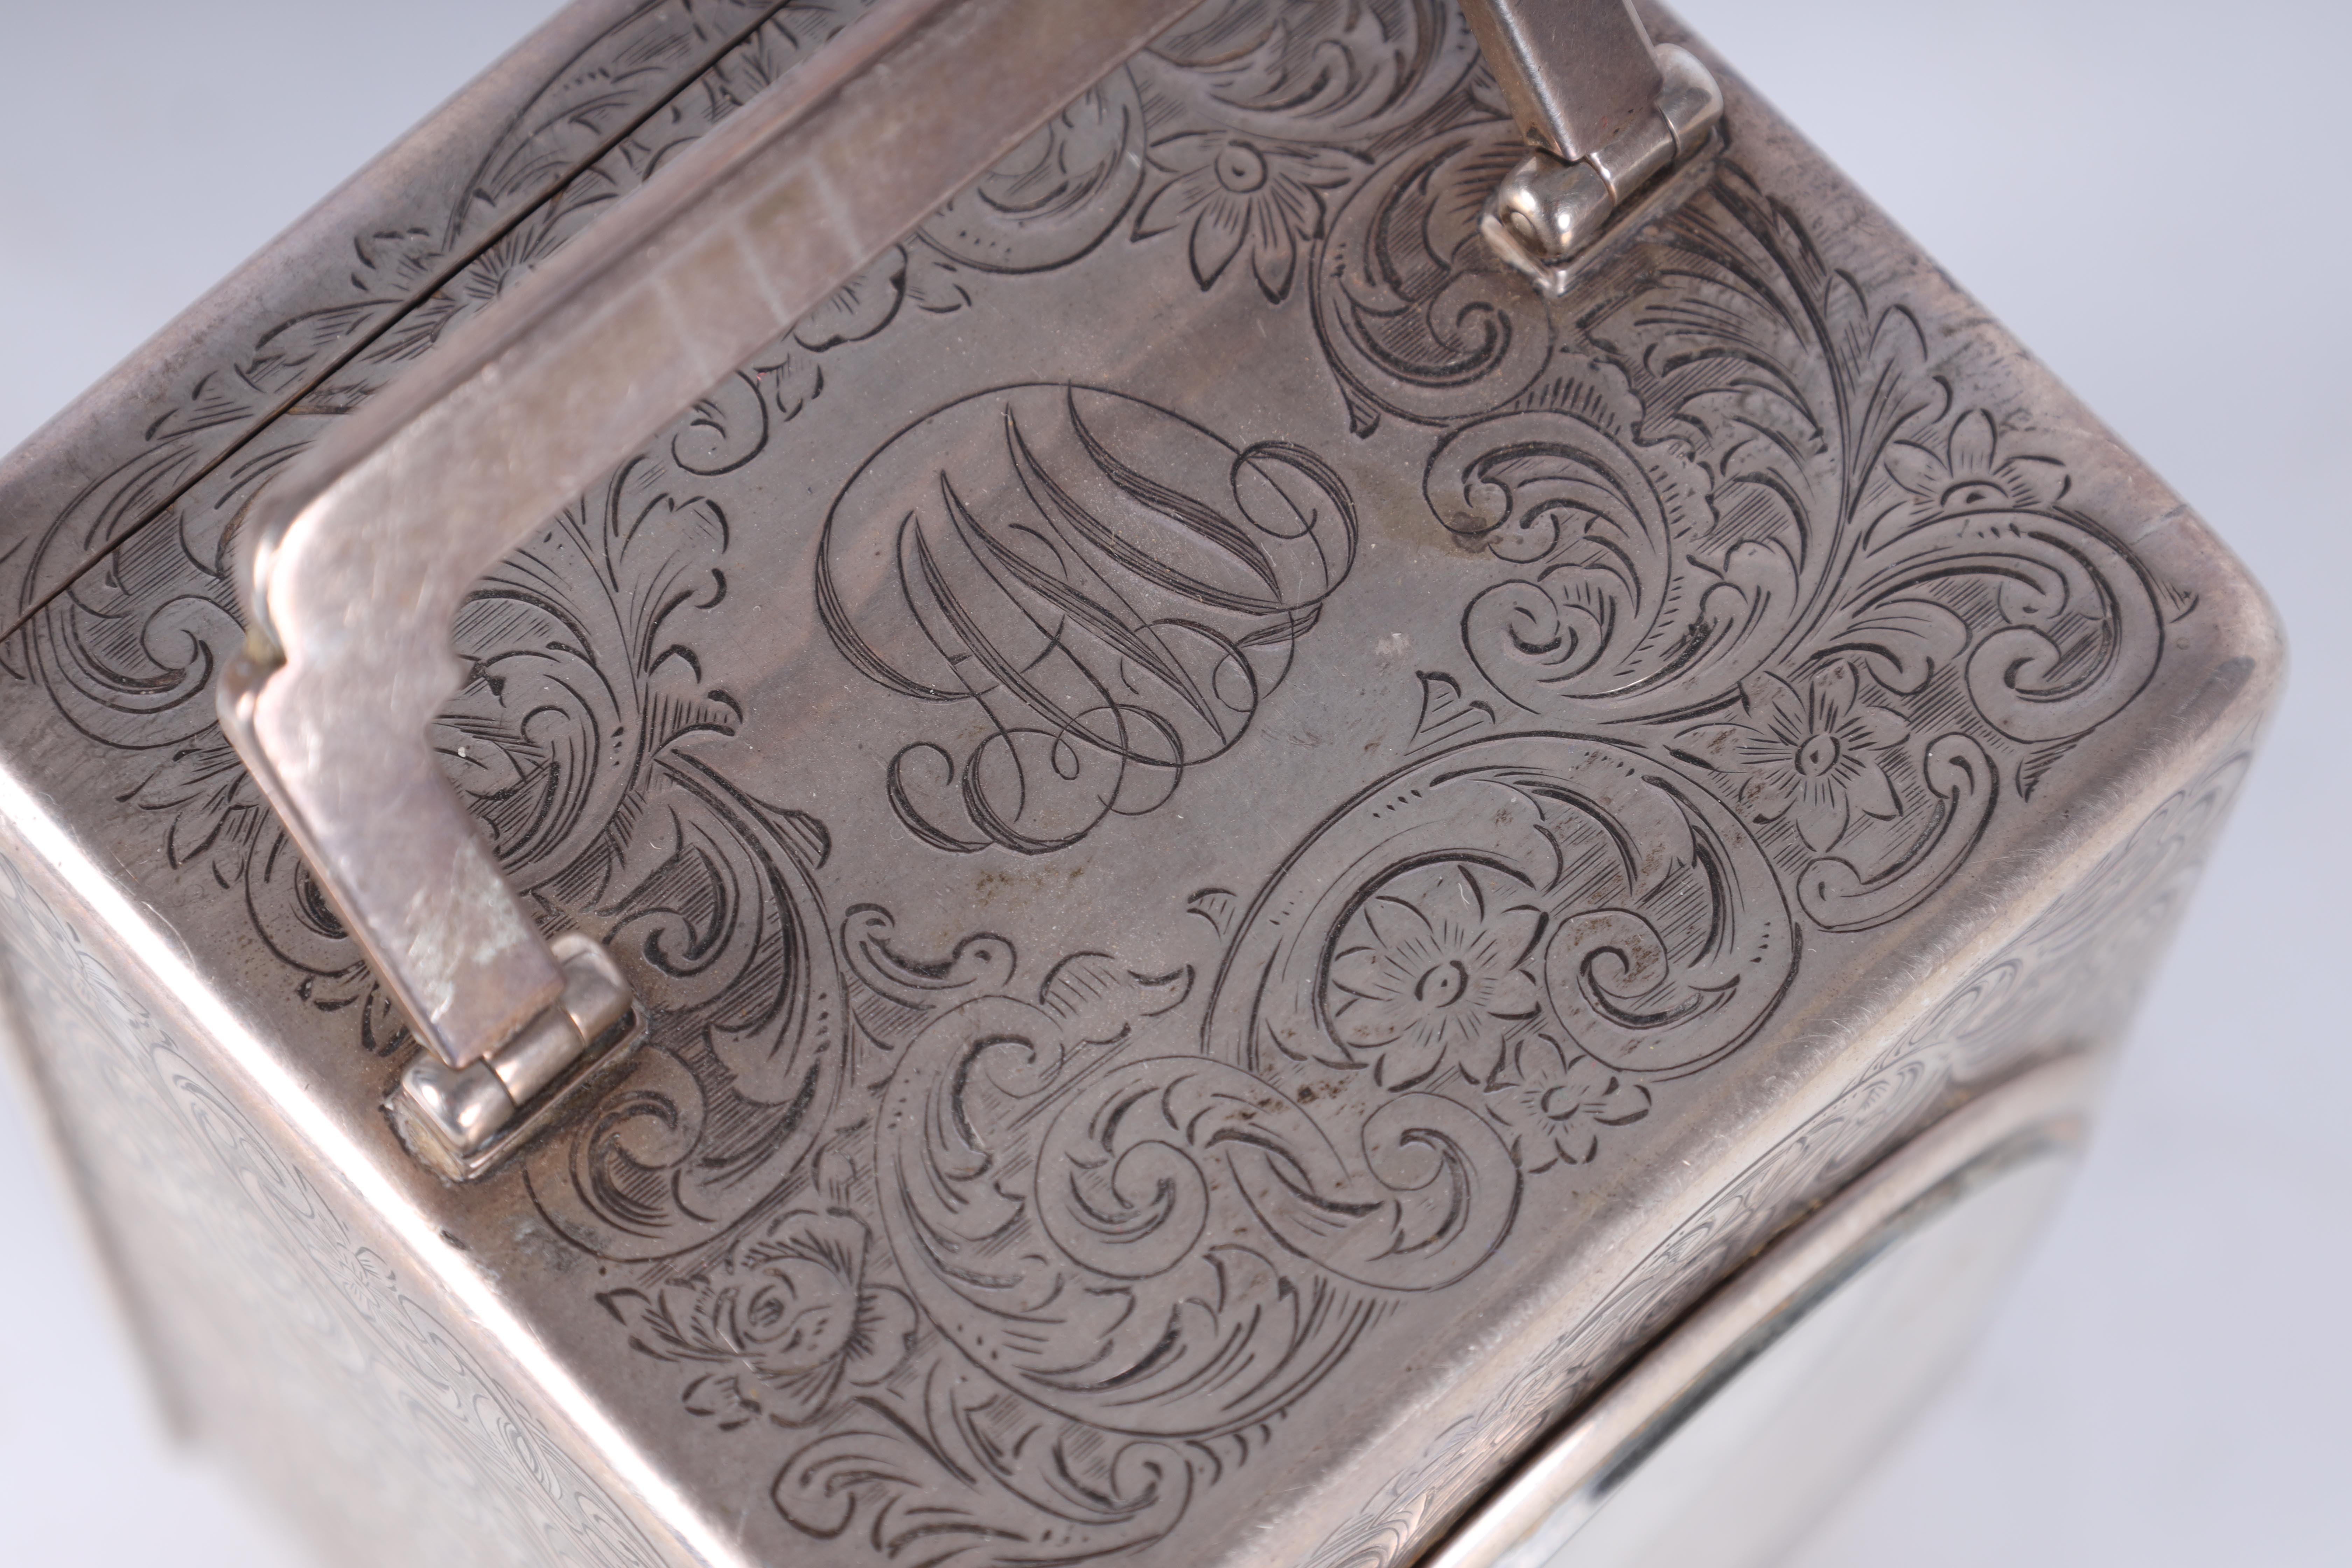 A LARGE EARLY 20TH CENTURY SILVER CASED CARRIAGE CLOCK the case covered with scrolling foliated - Image 5 of 10